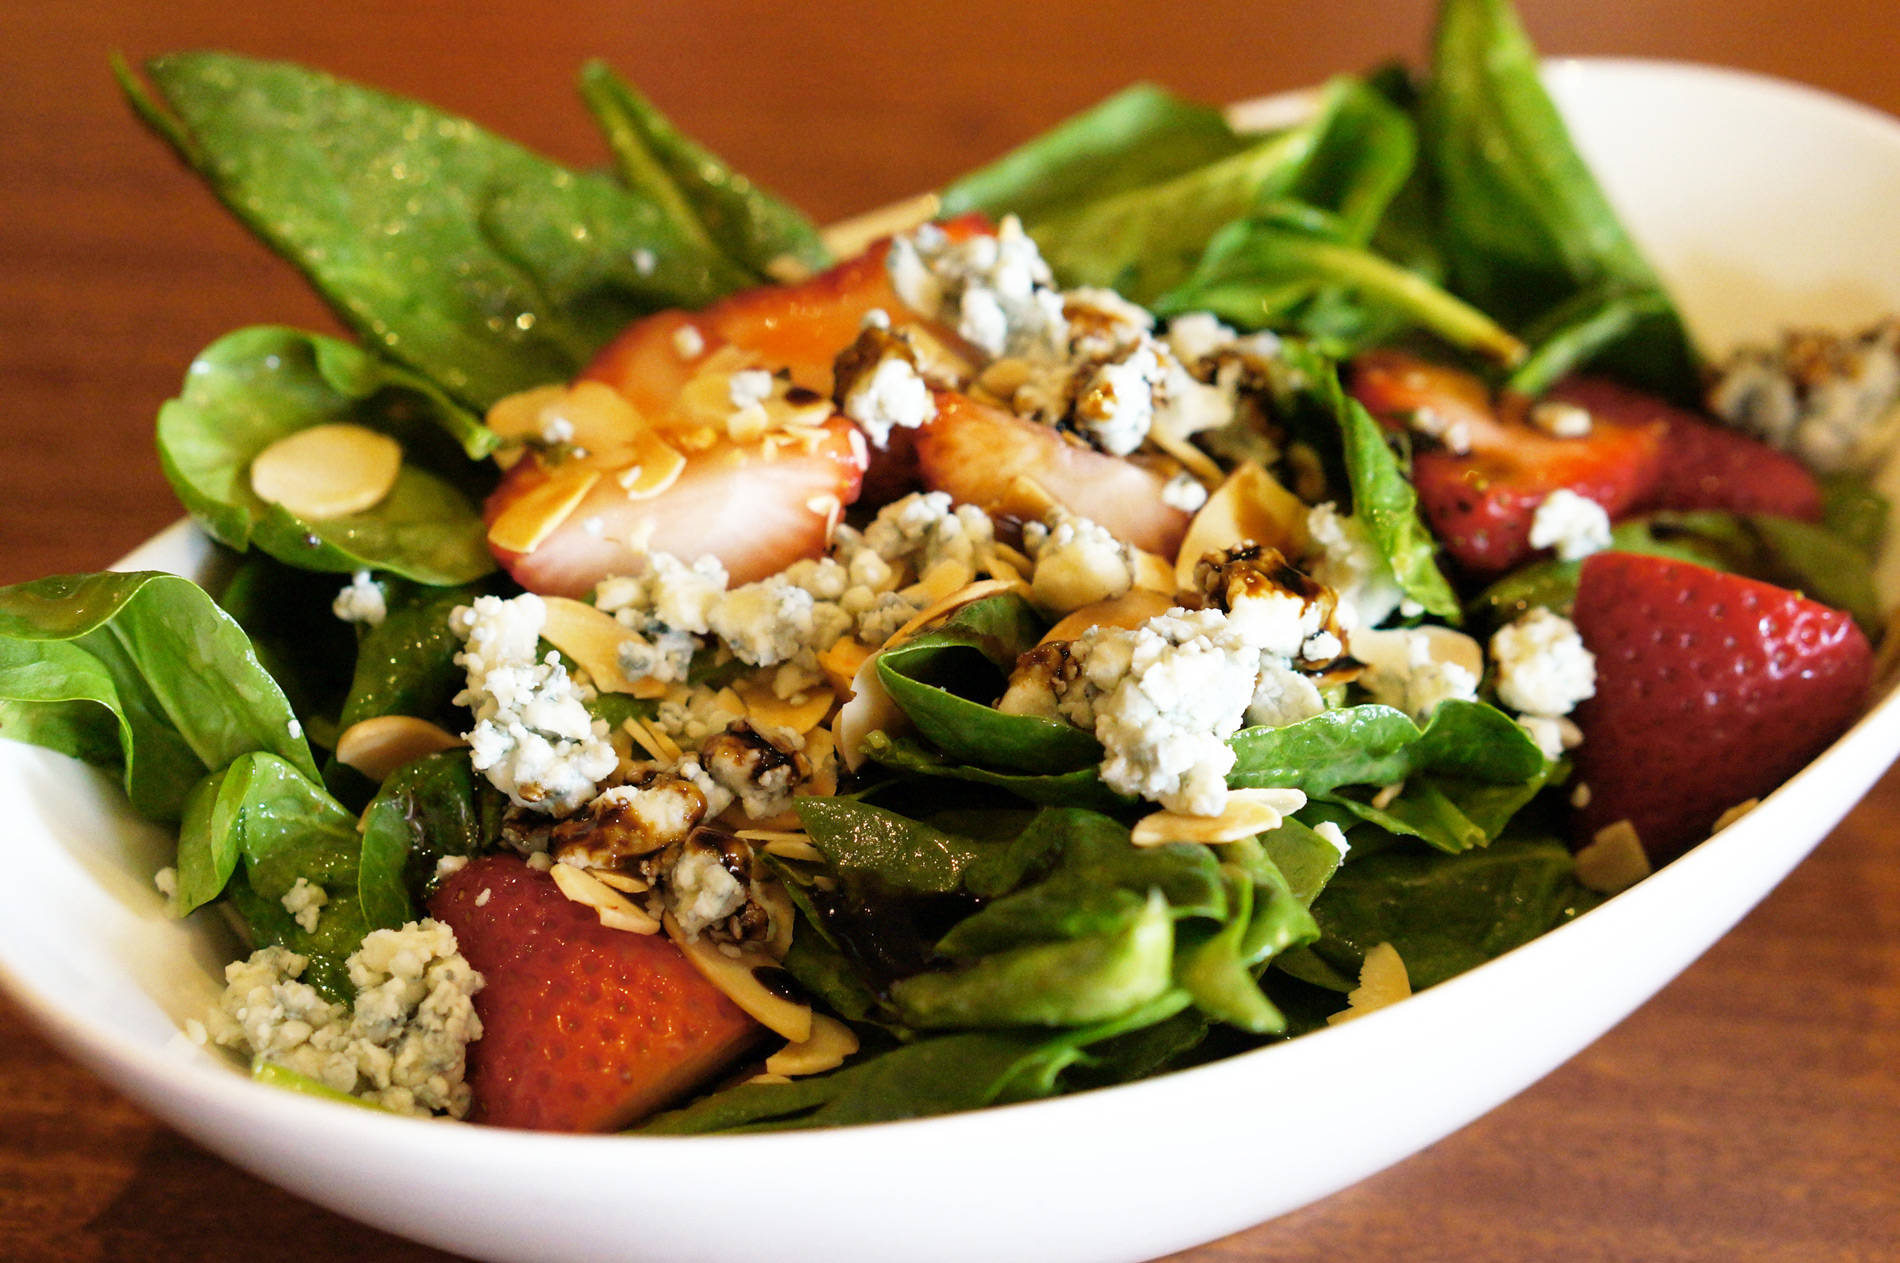 Seasons 52 Spinach & Strawberry Salad